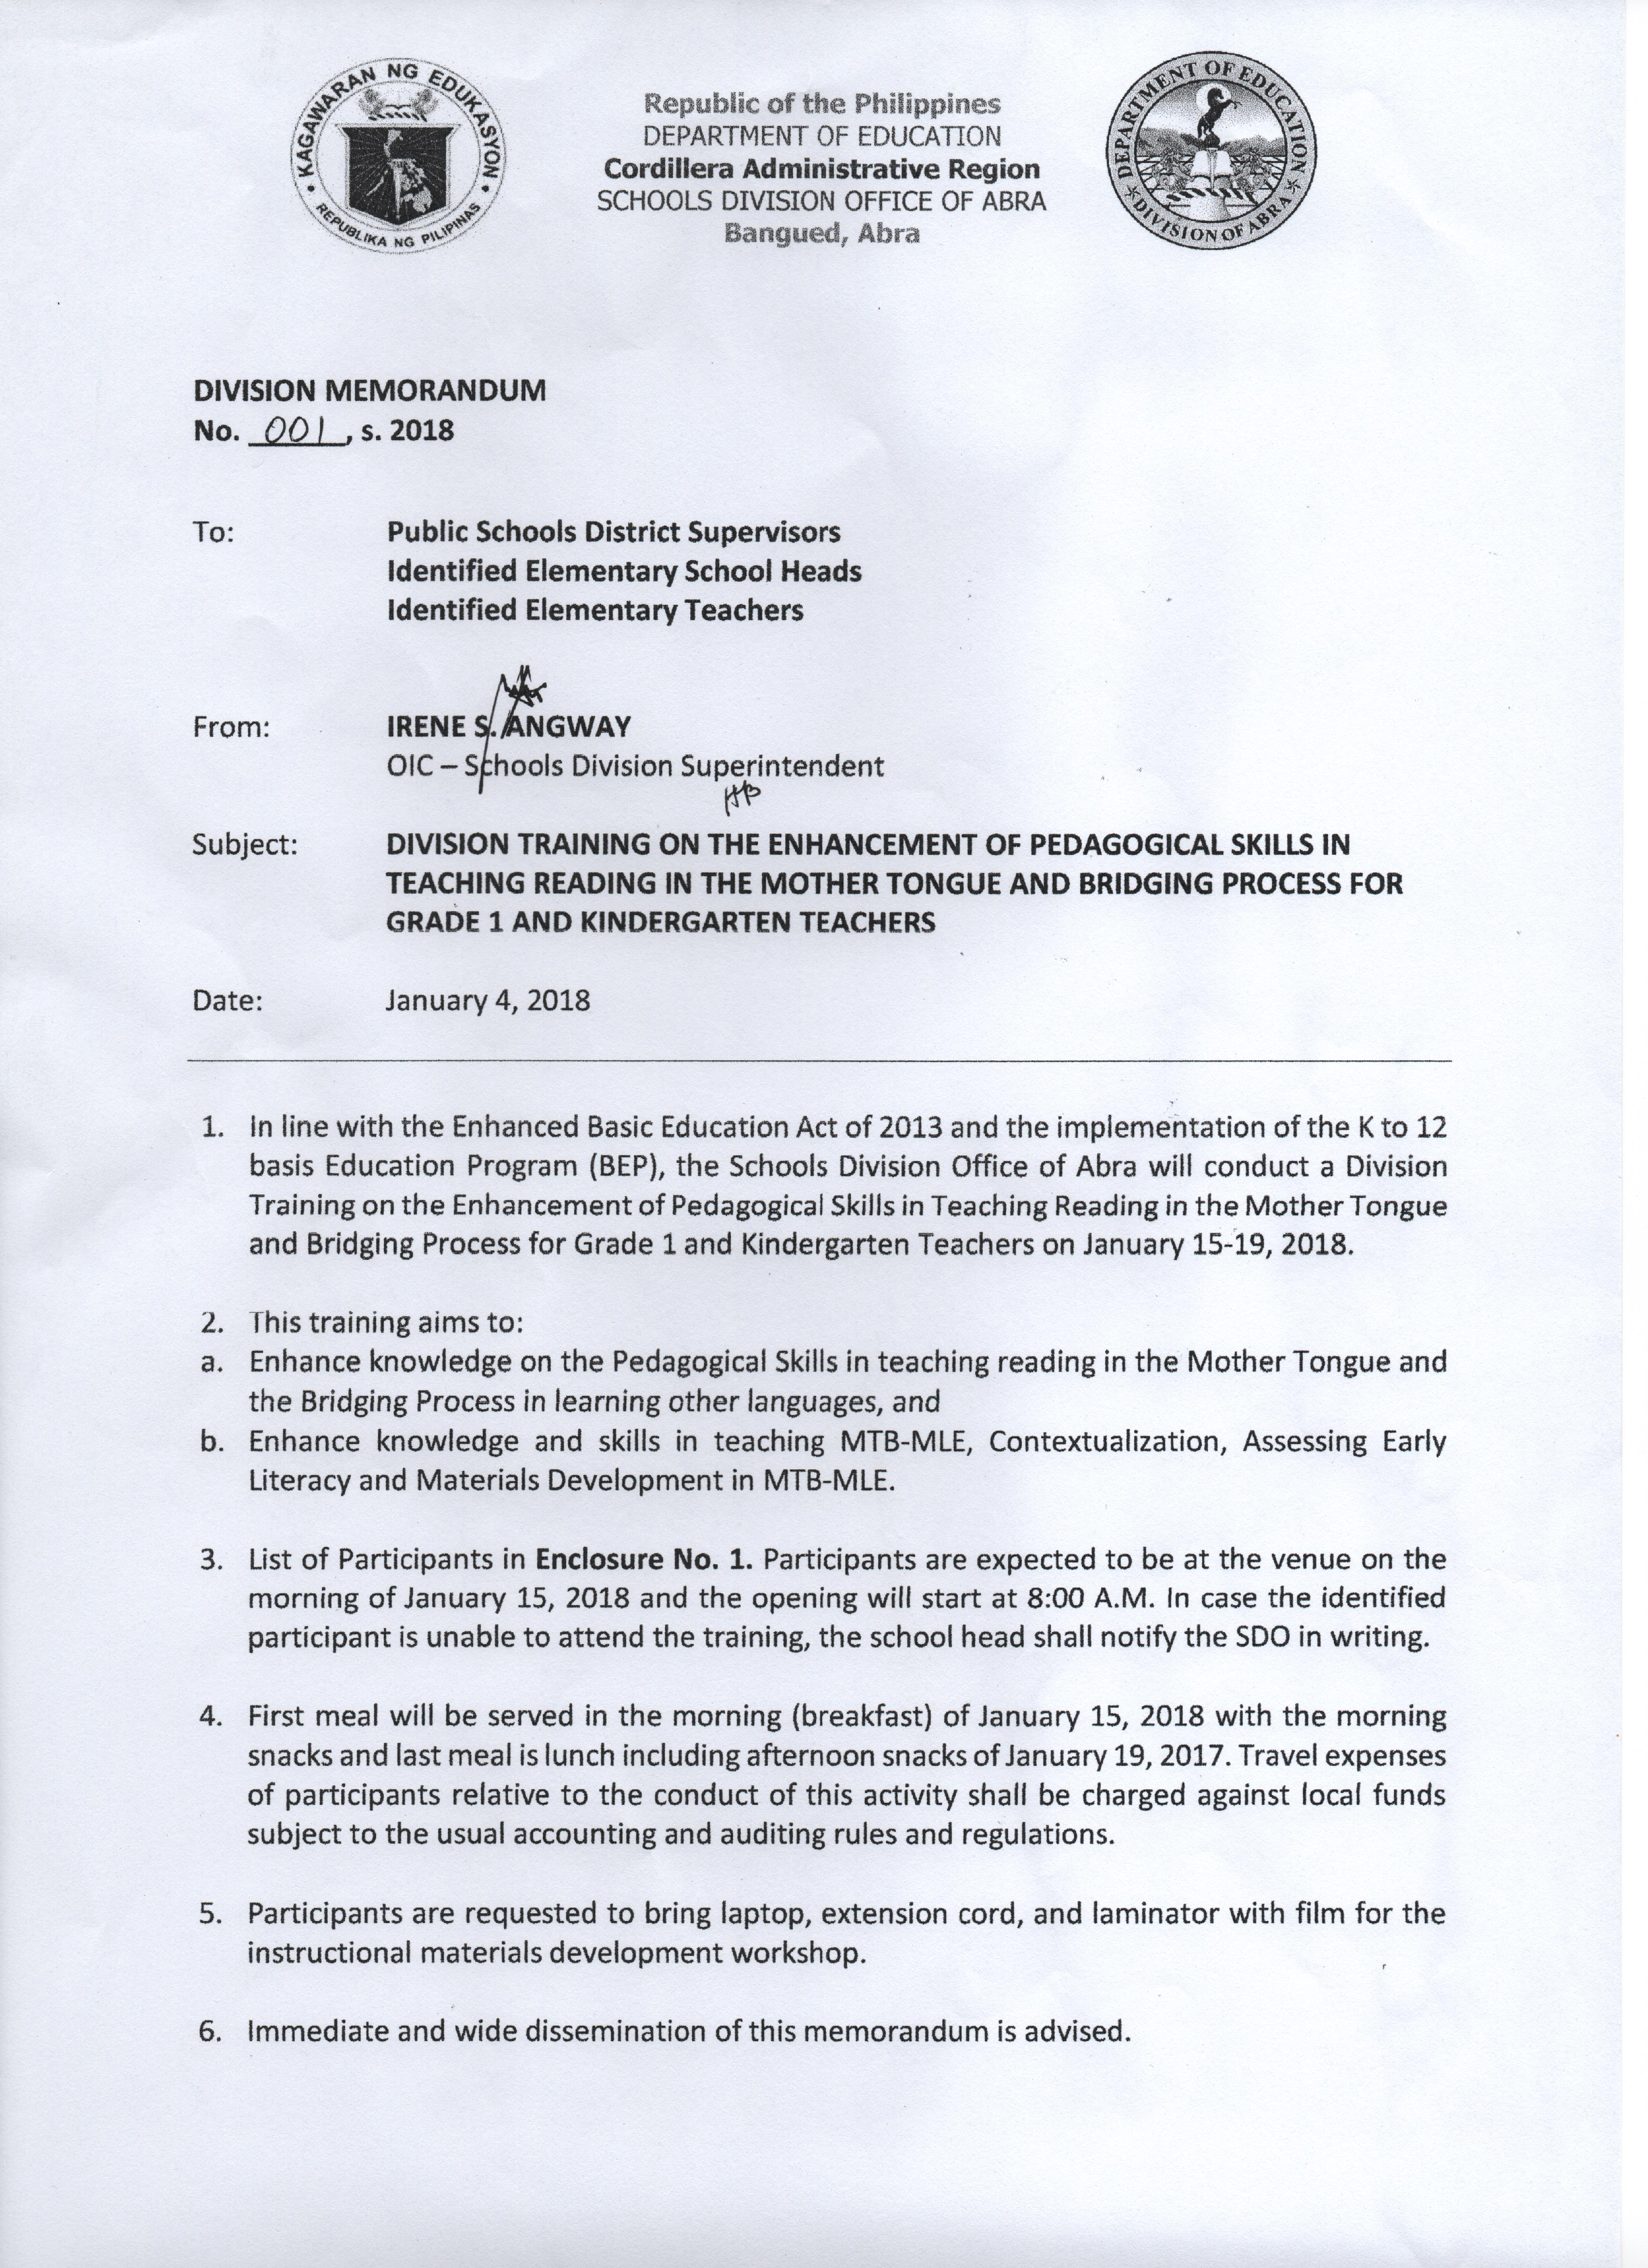 DepEd Division Memo Archives - Page 10 of 25 - Welcome to